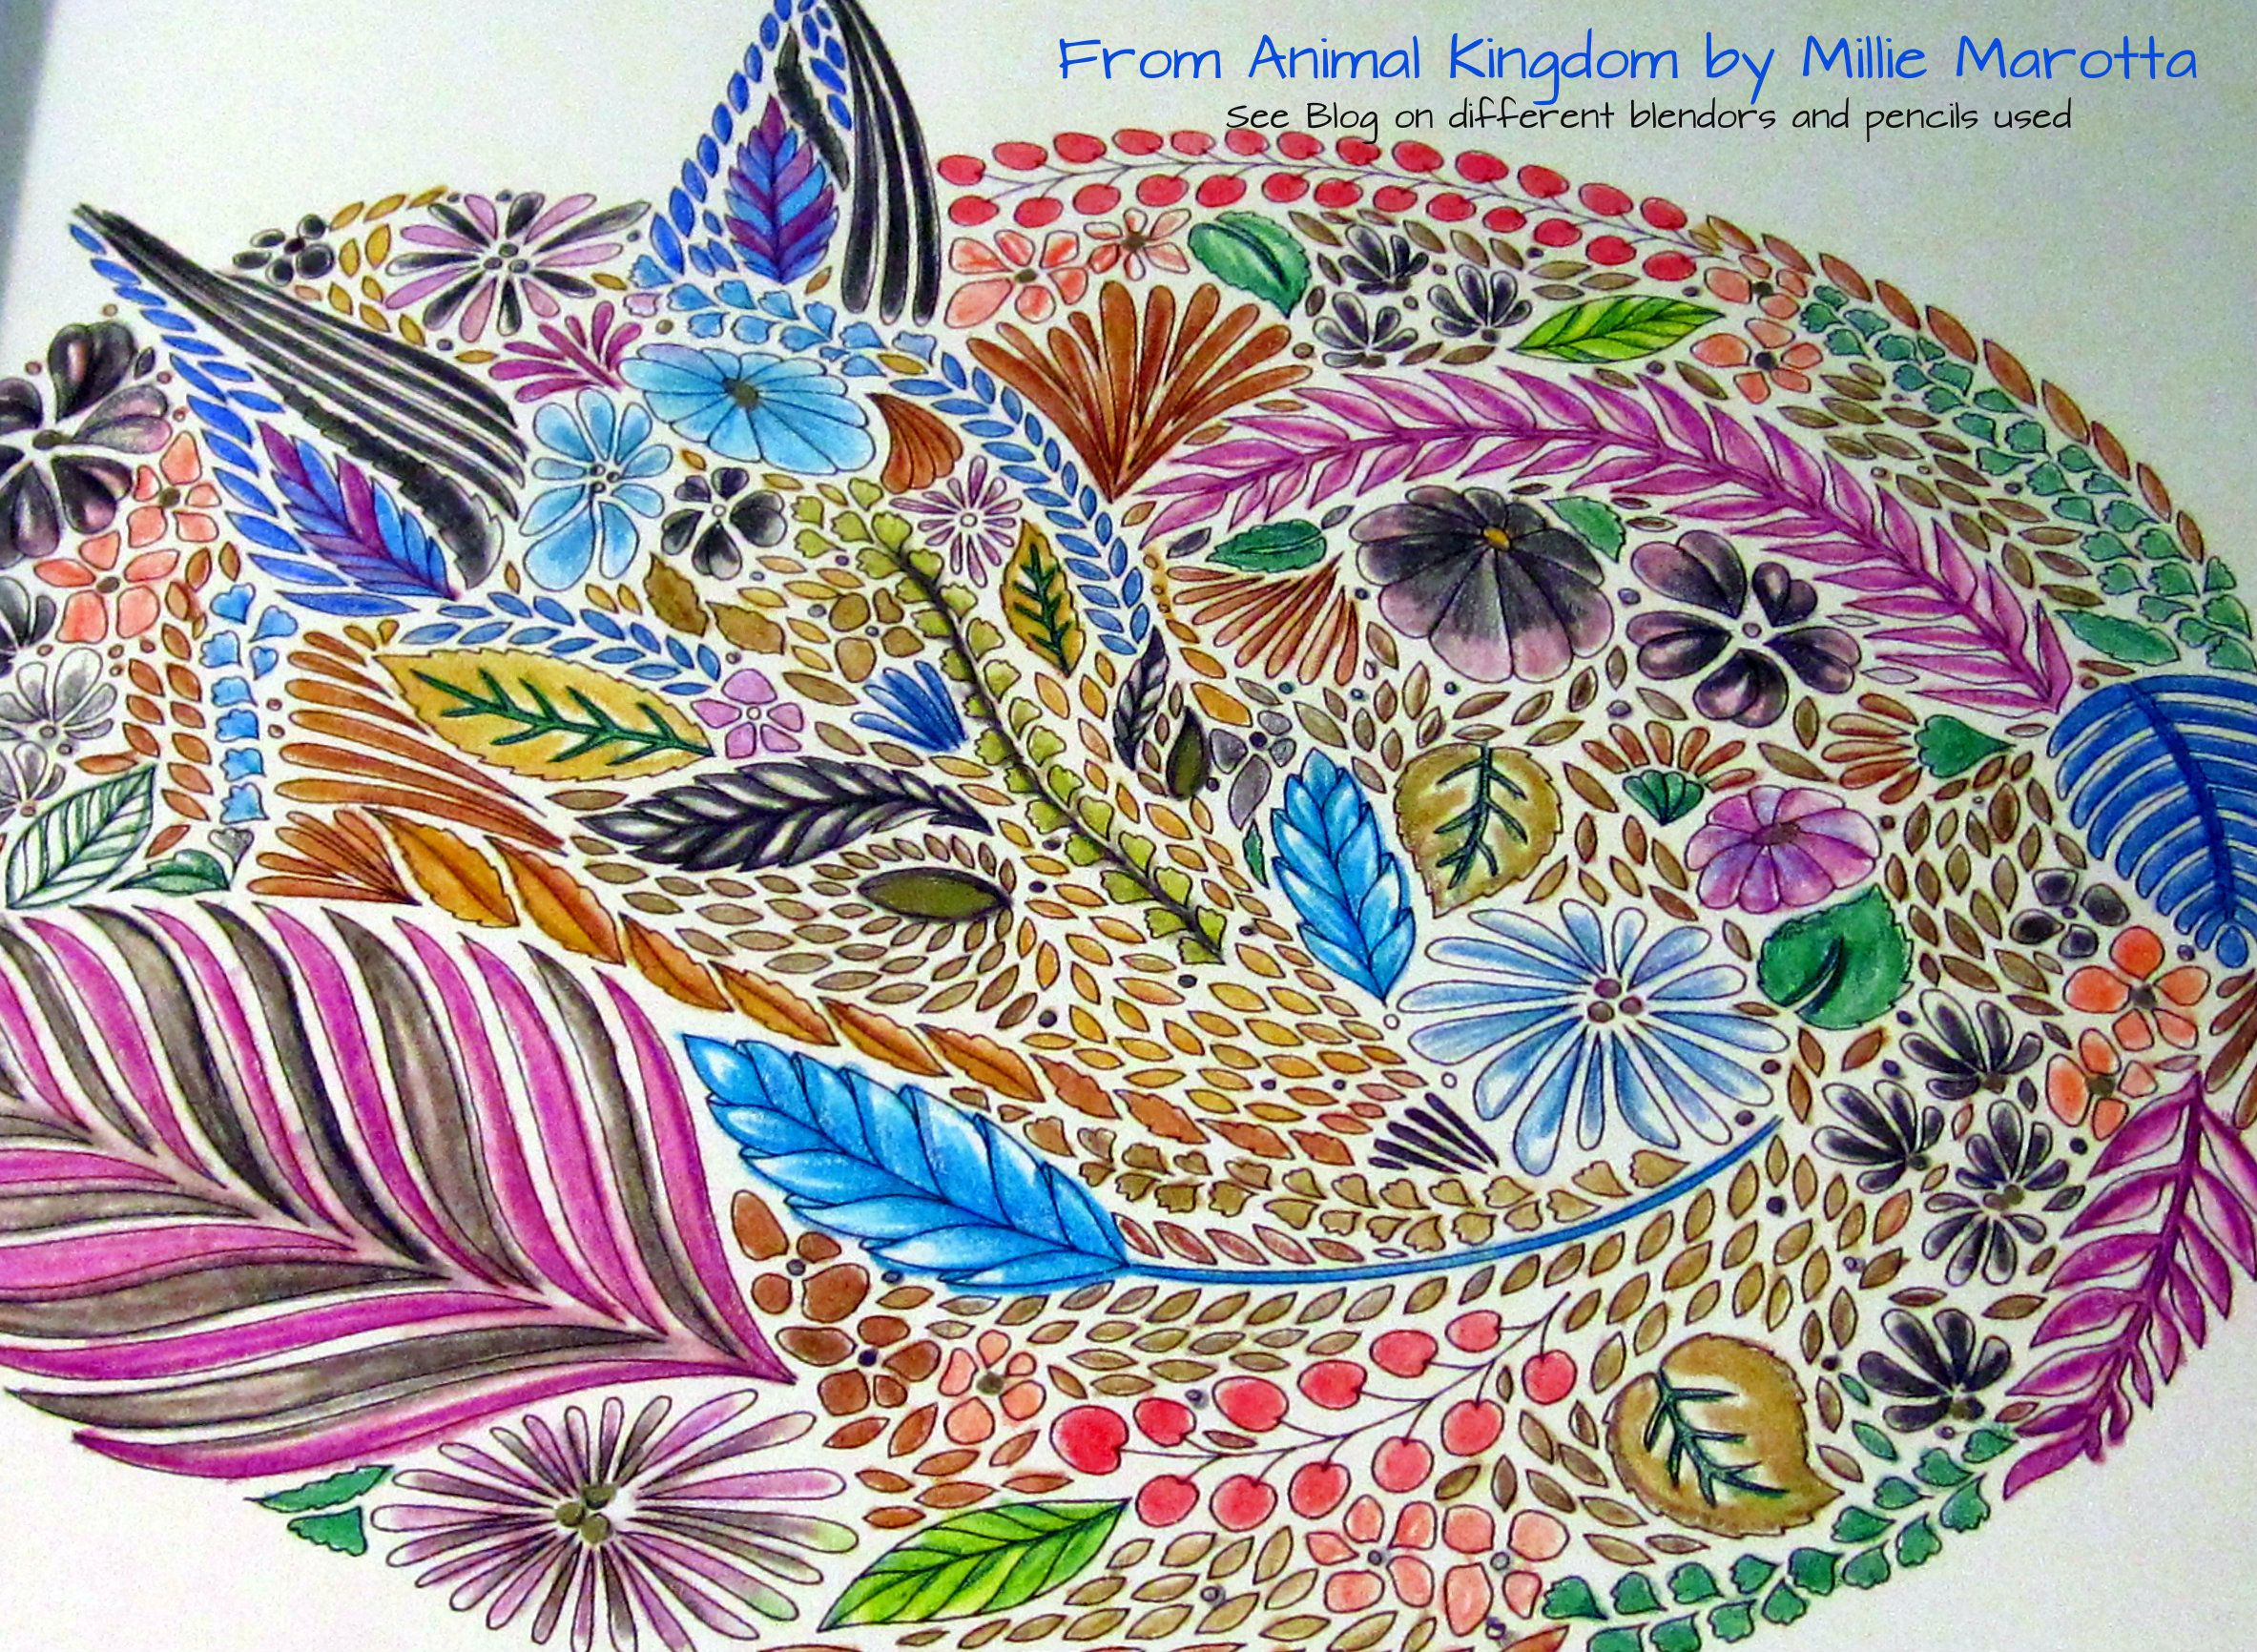 Another Great Illustration Done By Millie Marotta In The Animal Kingdom Coloring Book I Used Water Color Pencils And Tombow Blender